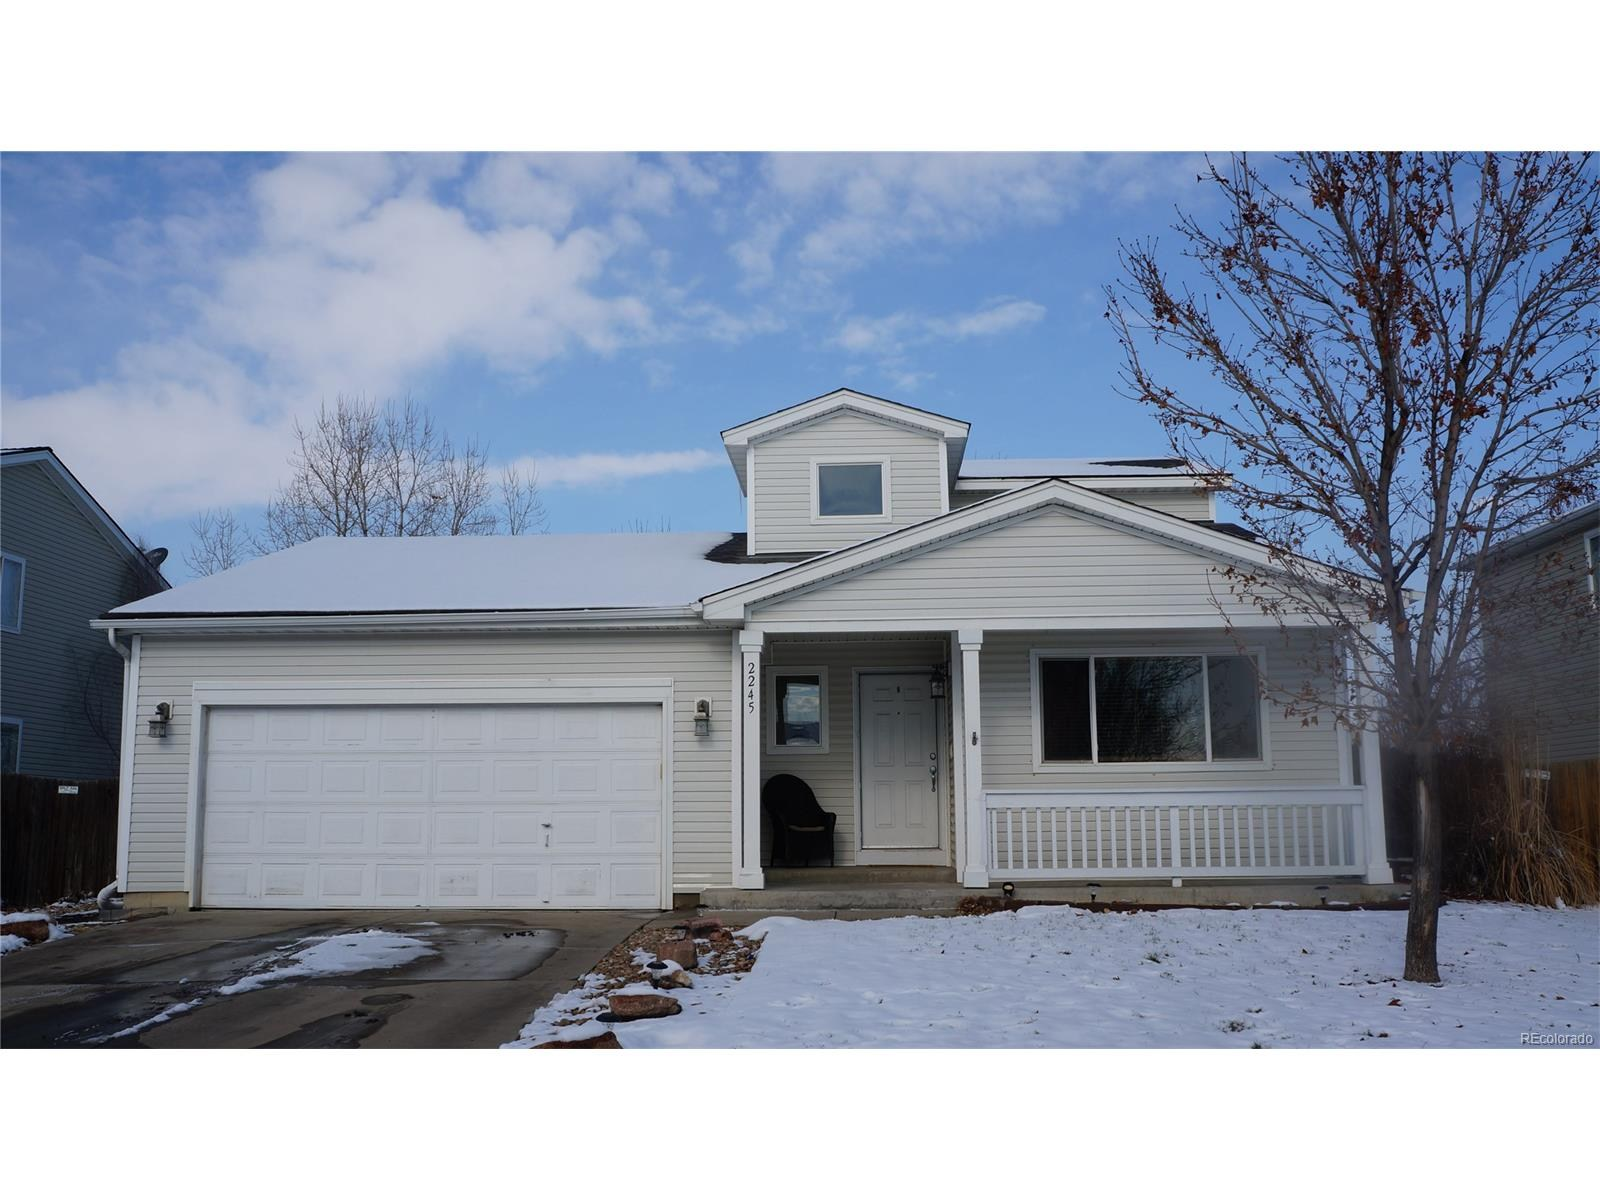 MLS# 8850556 - 1 - 2245 E 127th Place, Thornton, CO 80241